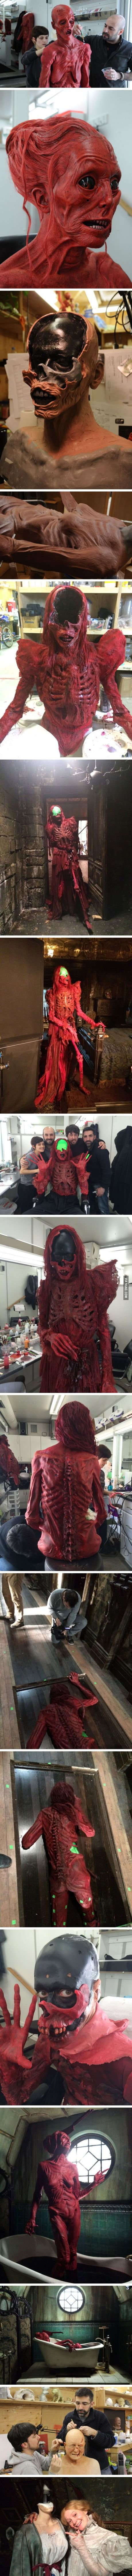 In Guillermo del Toros Crimson Peak, the ghosts were actors in full makeup, enhanced by CGI (not other way around)